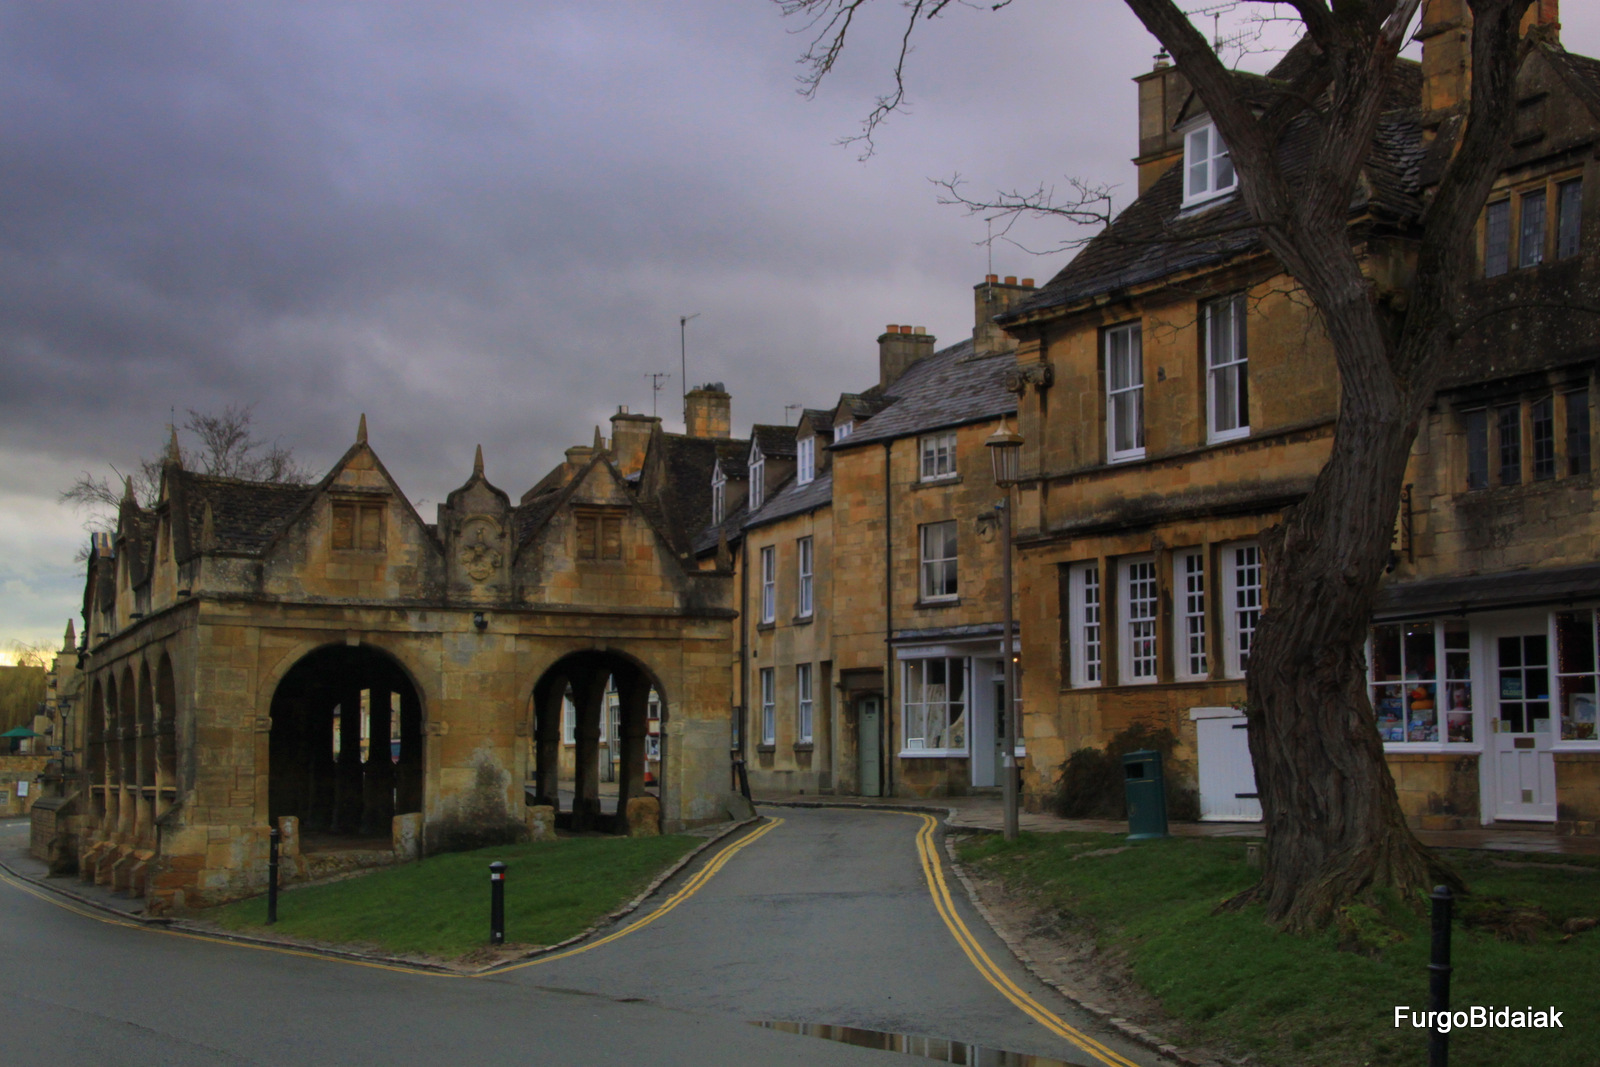 Chipping Camden, Costwolds, Inglaterra en furgo, Furgobidaiak